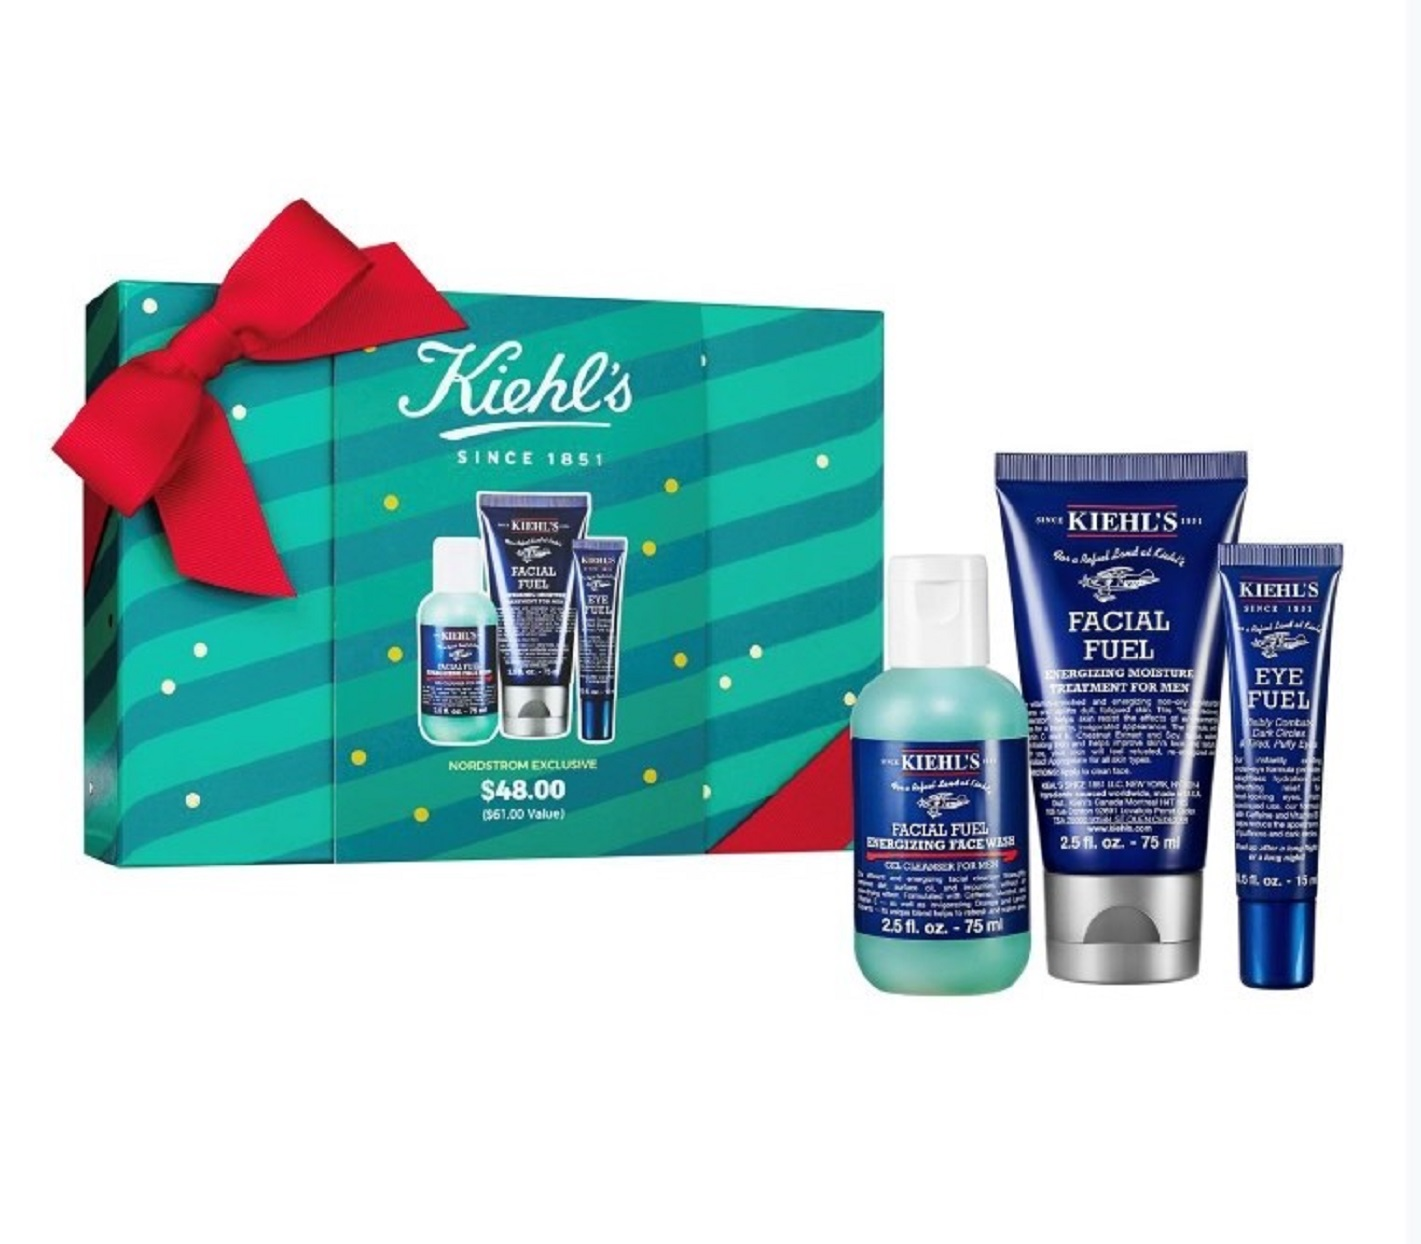 2019 holiday gift guide Kiehl's Facial Fuel Favorites Set for Men